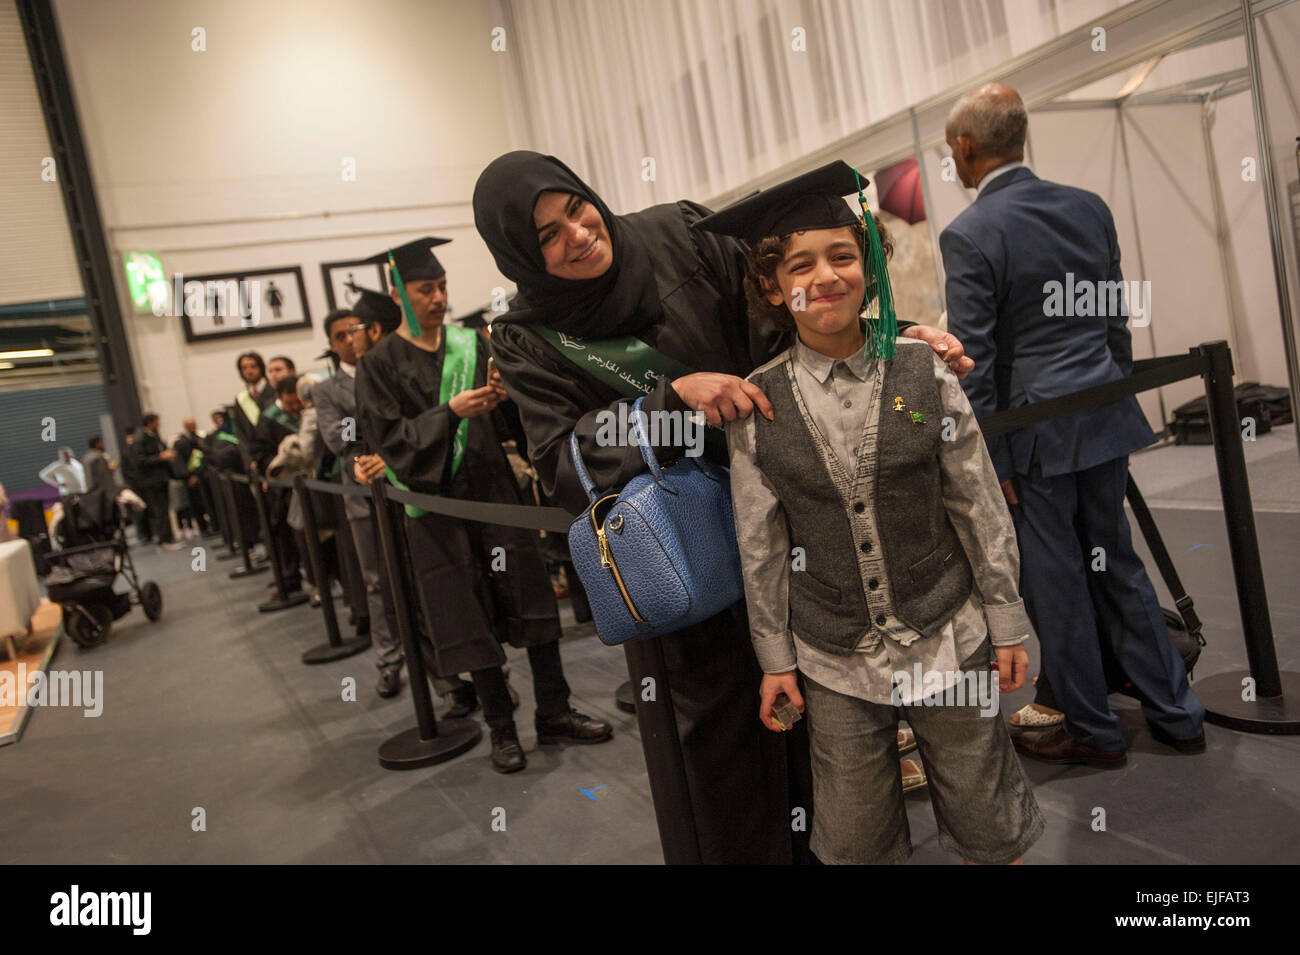 Queuing for their graduation snap Saudi Arabian nationals at The